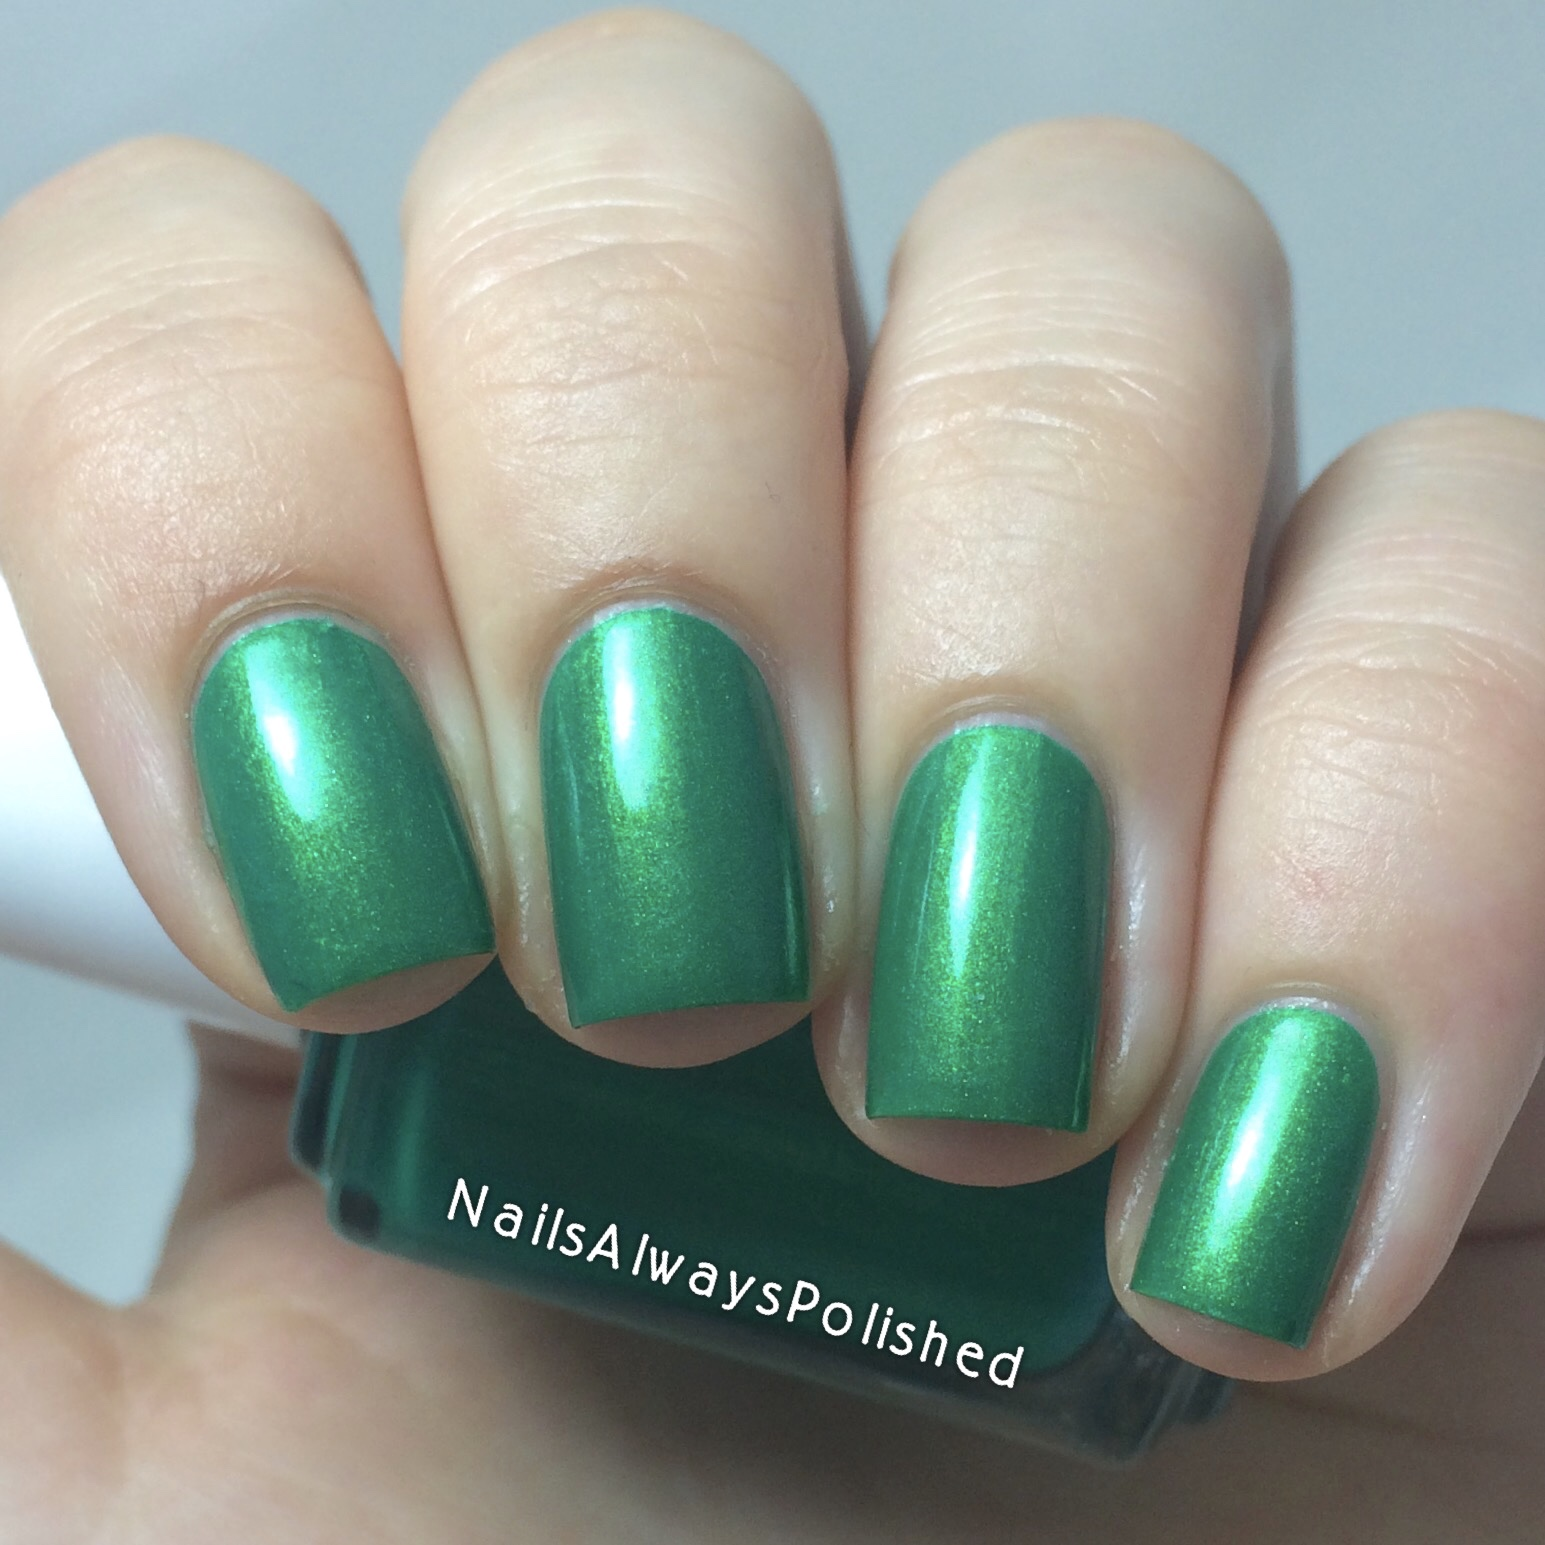 Nails Always Polished: Essie All Hands on Deck